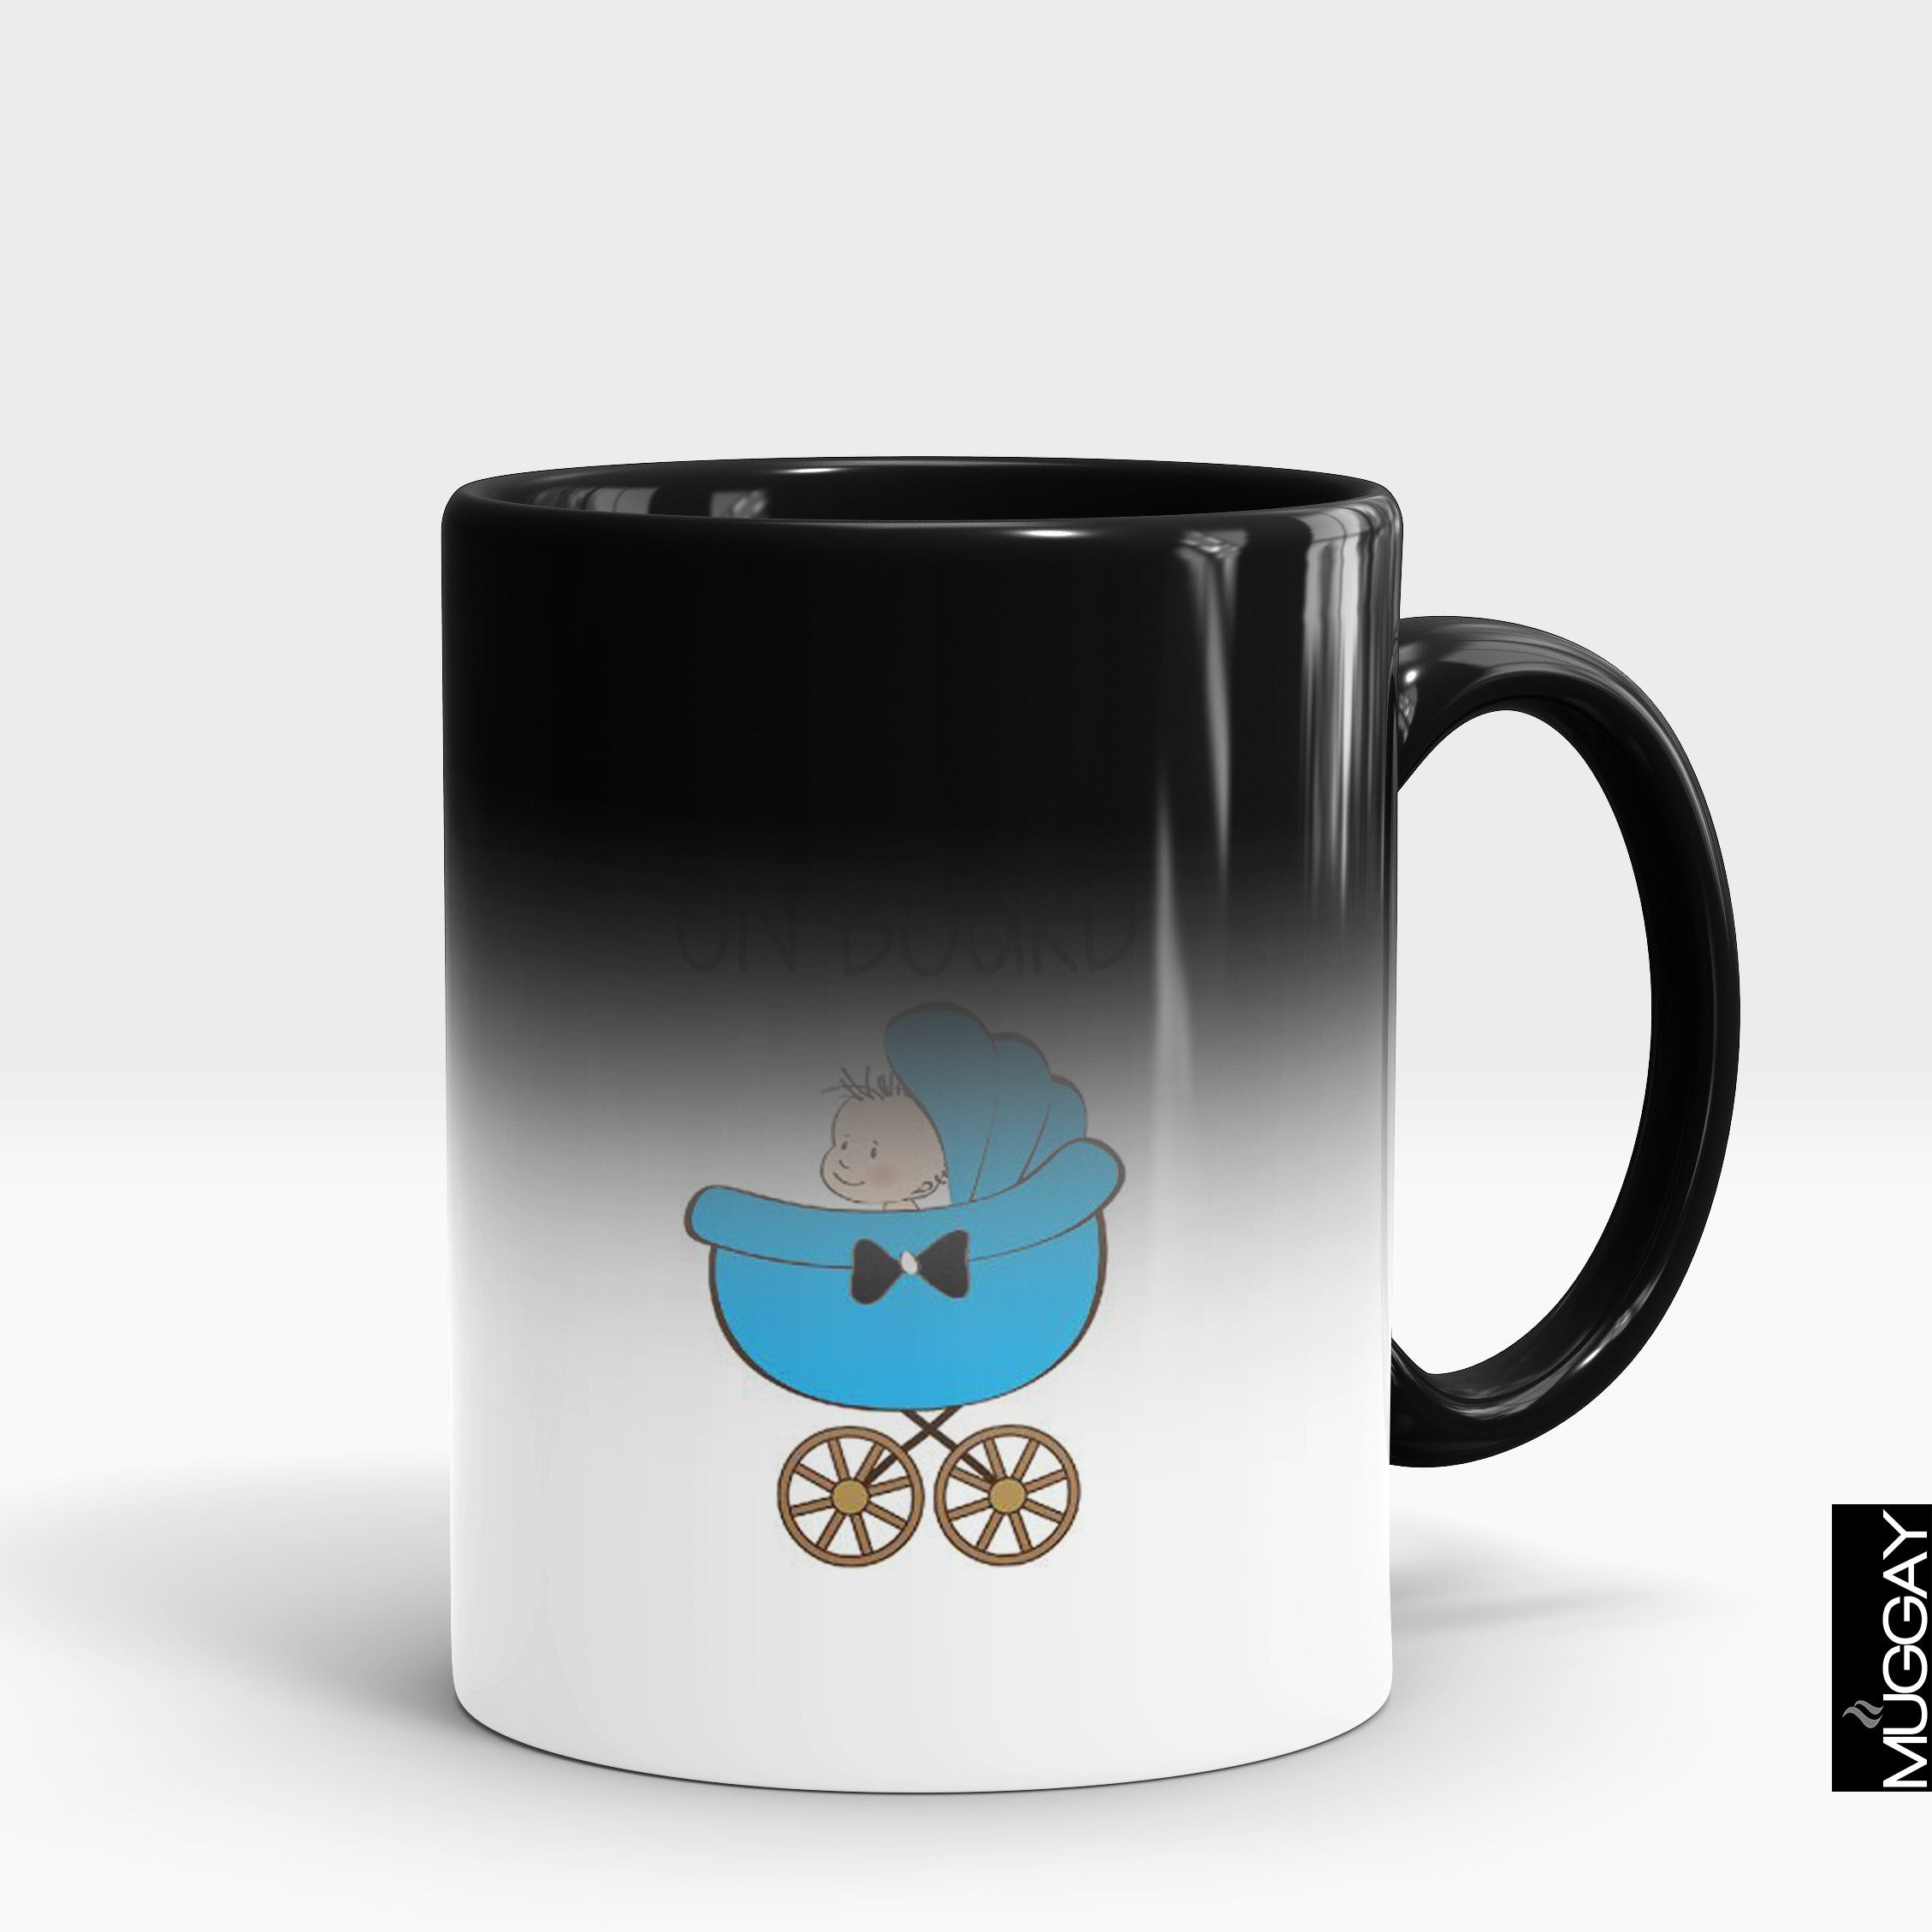 Baby Mug - baby2 - Muggay.com - Mugs - Printing shop - truck Art mugs - Mug printing - Customized printing - Digital printing - Muggay